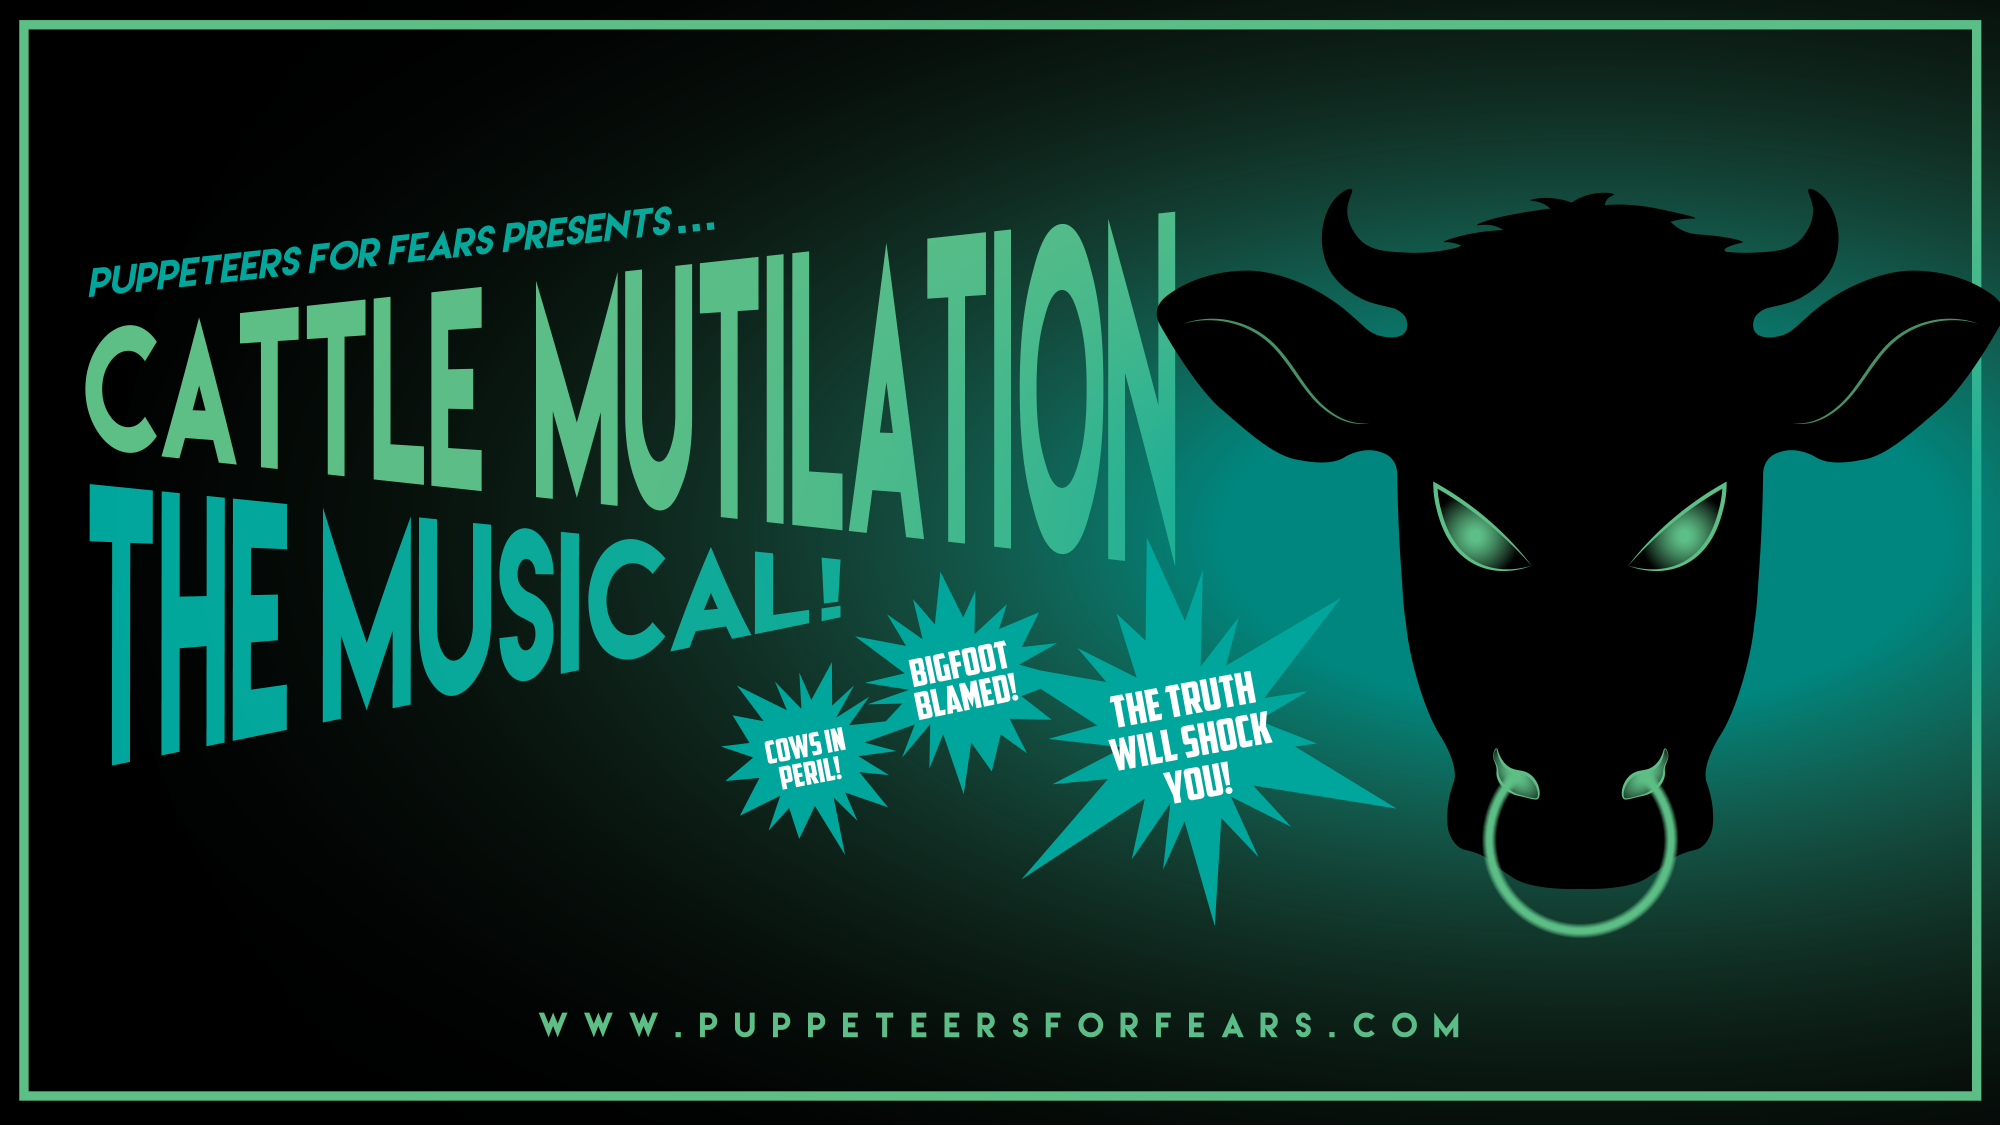 [News] Puppeteers for Fears Launching 2019 Season with CATTLE MUTILATION: THE MUSICAL